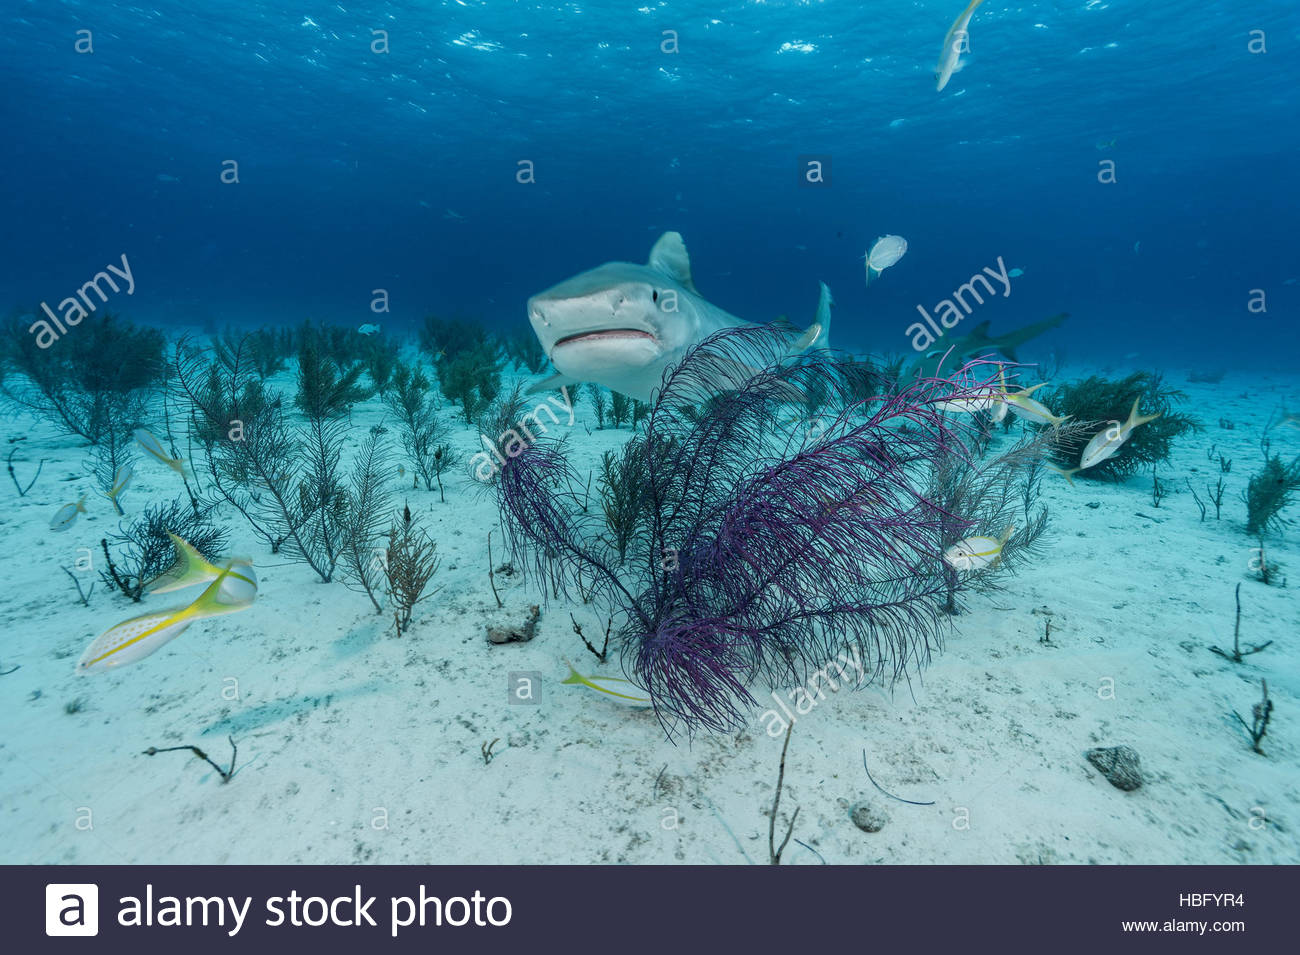 A tiger shark cruises the seafloor at Tiger Beach, a popular dive site in the Bahamas. - Stock Image